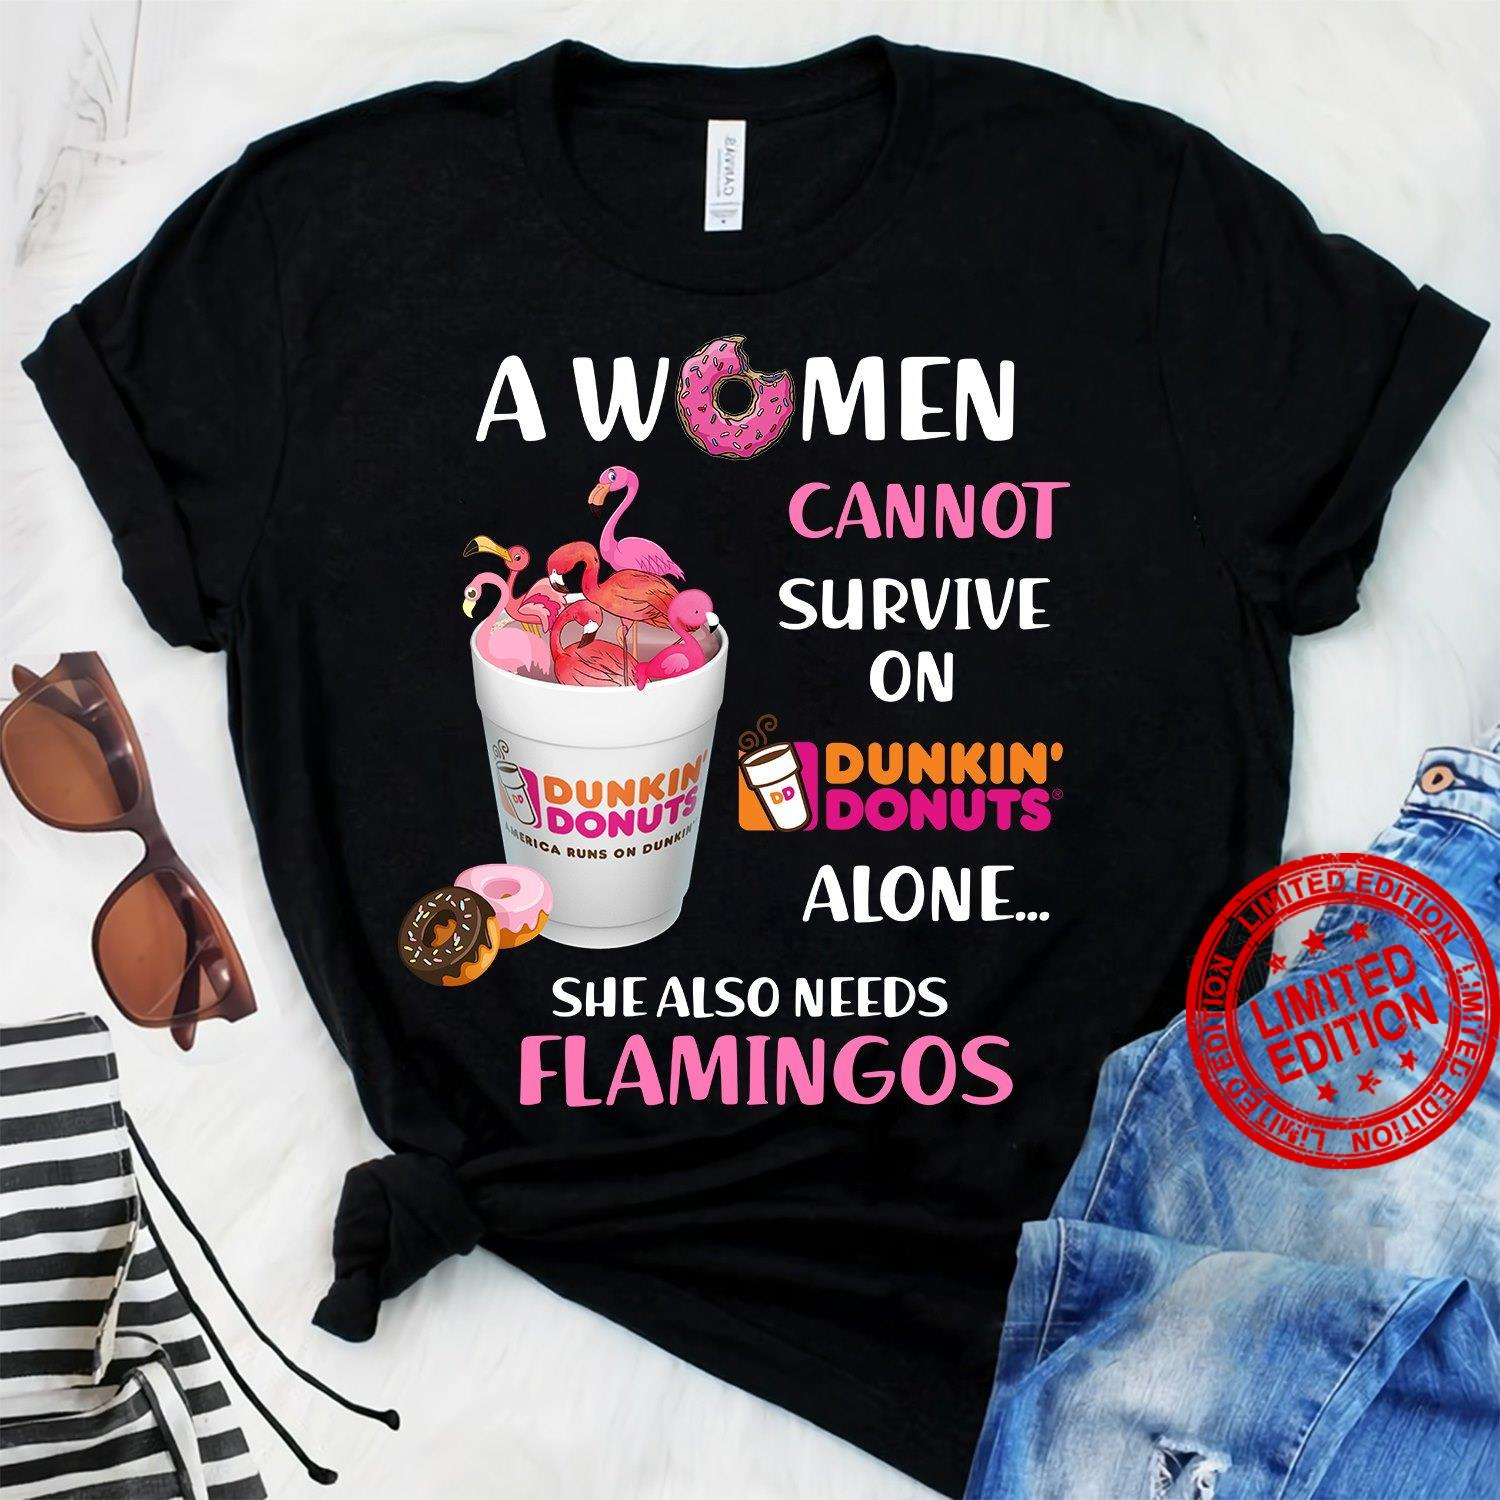 A Women Cannot Survive On Dunkin Donuts Alone She Also Needs Flamingos Shirt